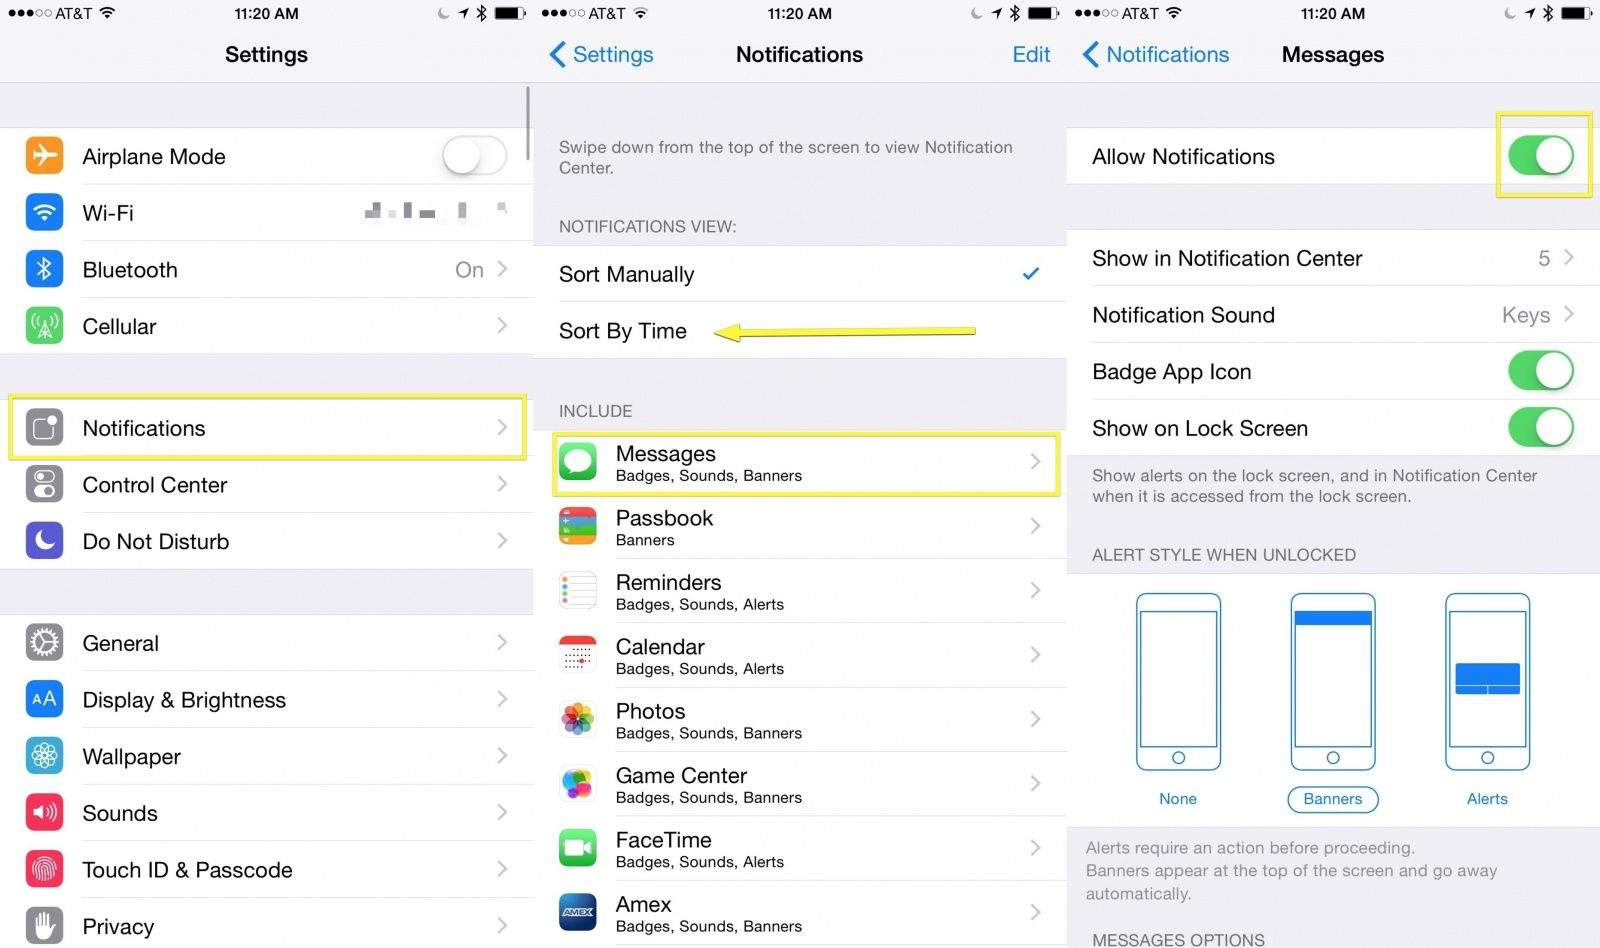 How to keep iOS gaming sessions from being interrupted | Cult of Mac